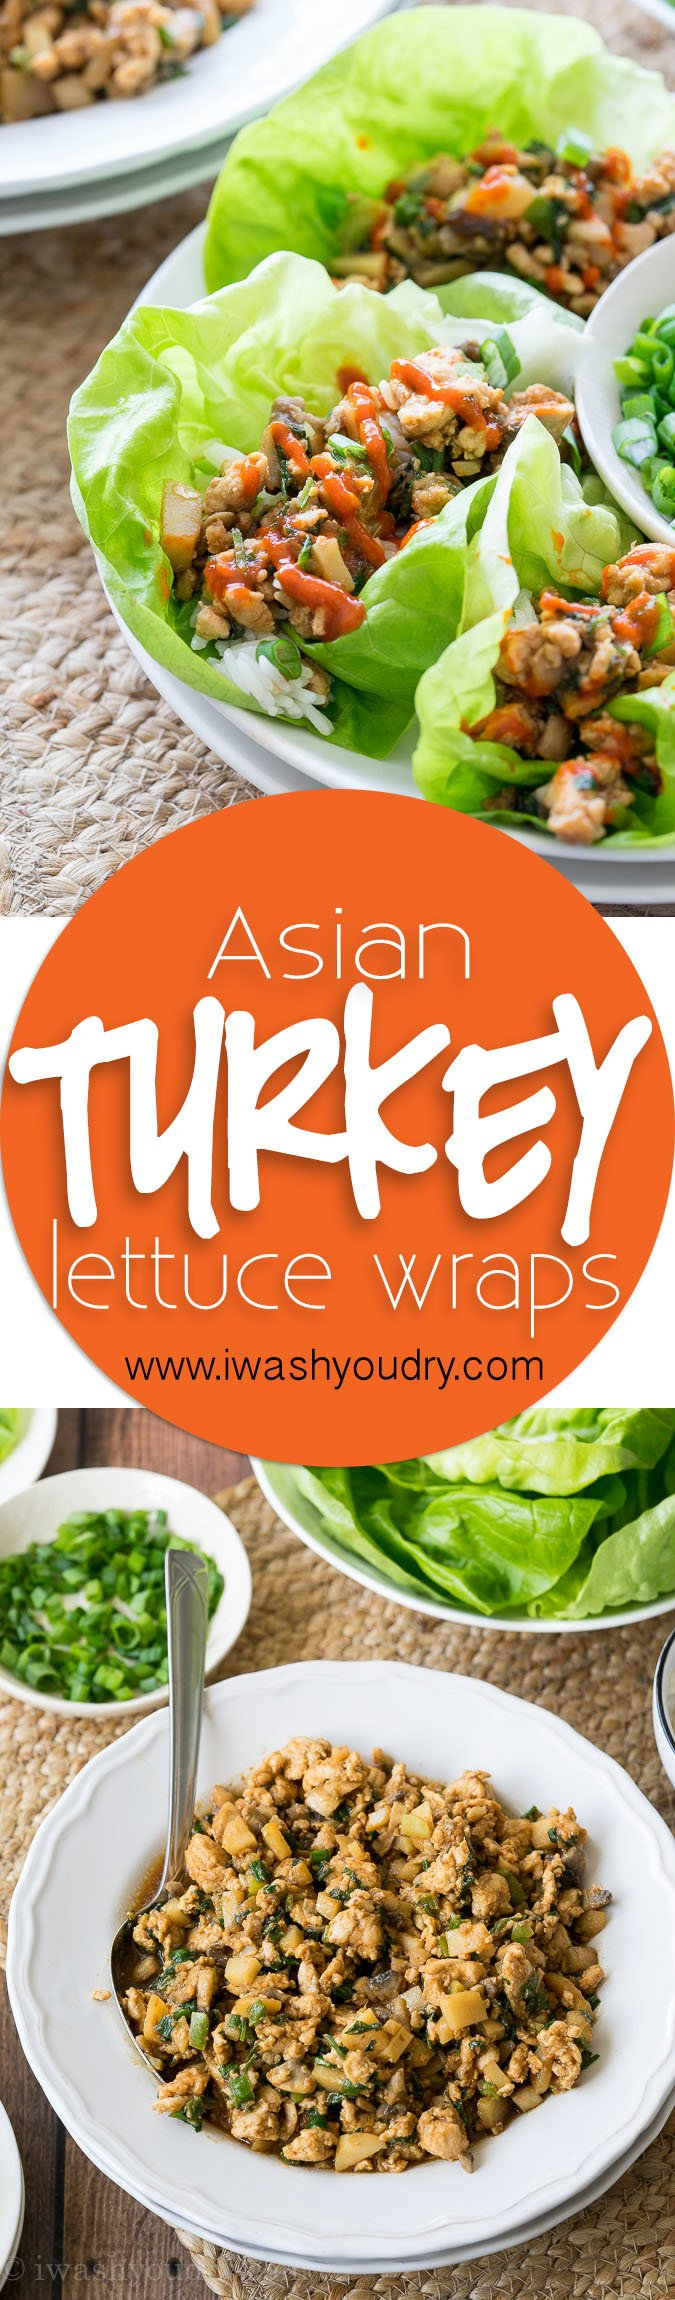 My family loves these super easy Asian Turkey Lettuce Wraps! They taste just like PF Chang's and take less than 20 minutes to put together!